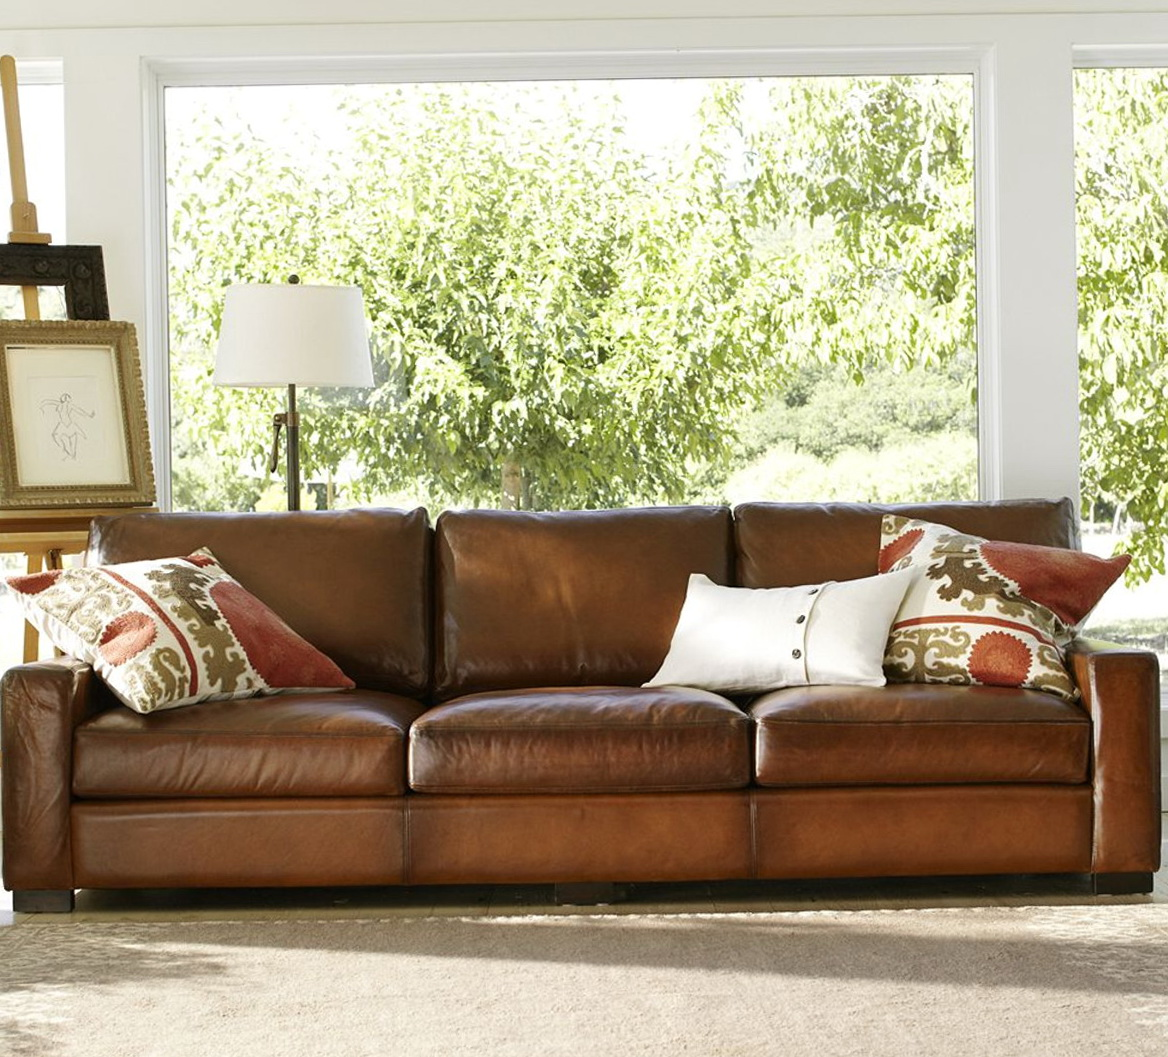 Leather Cushions For Sofa